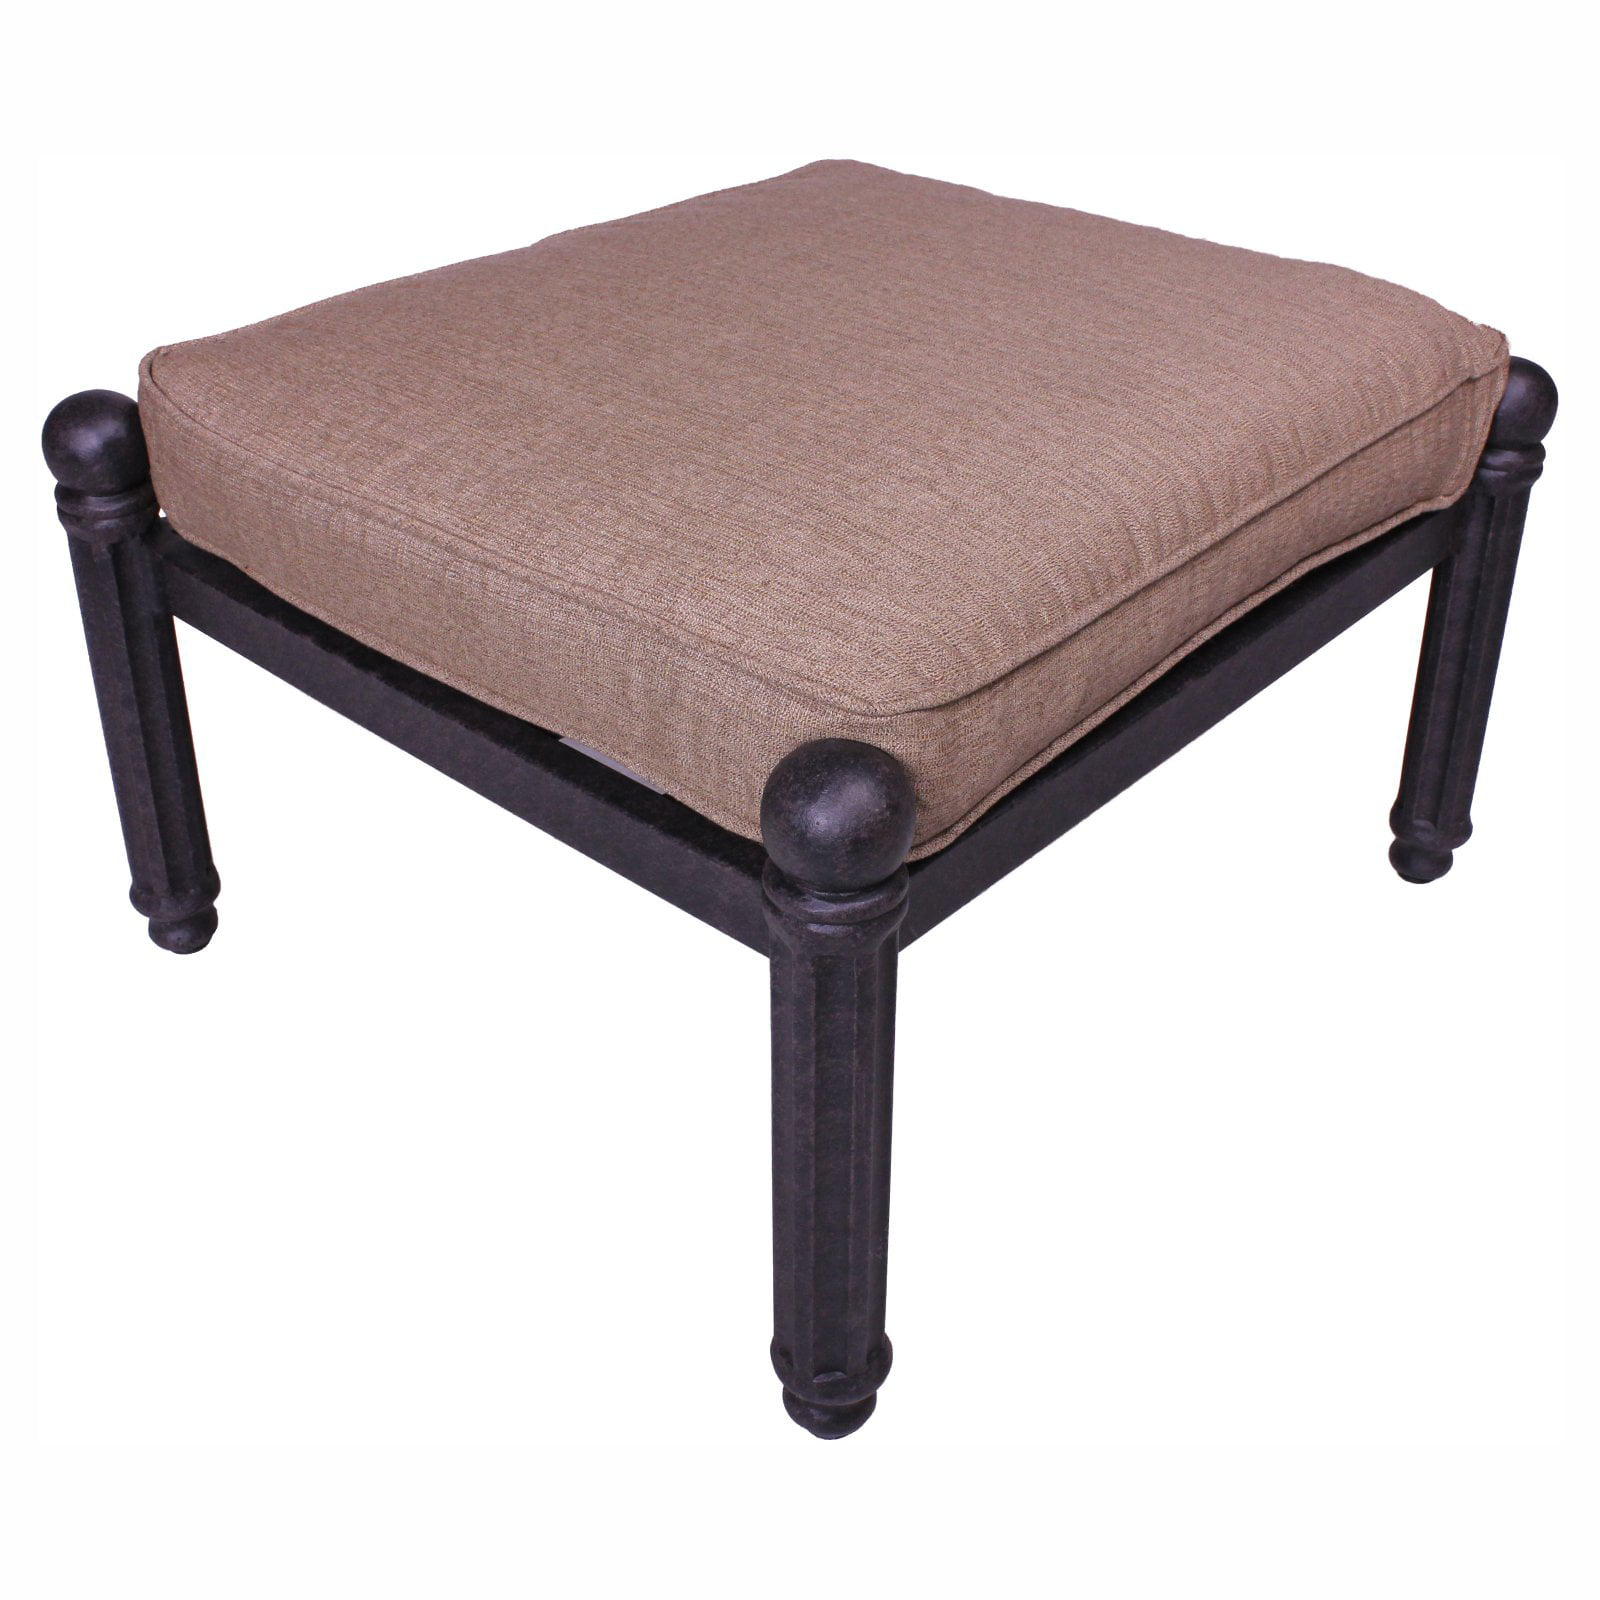 Click here to buy Paradise Cove Designs Balboa Aluminum Outdoor Ottoman with Optional Cushion.